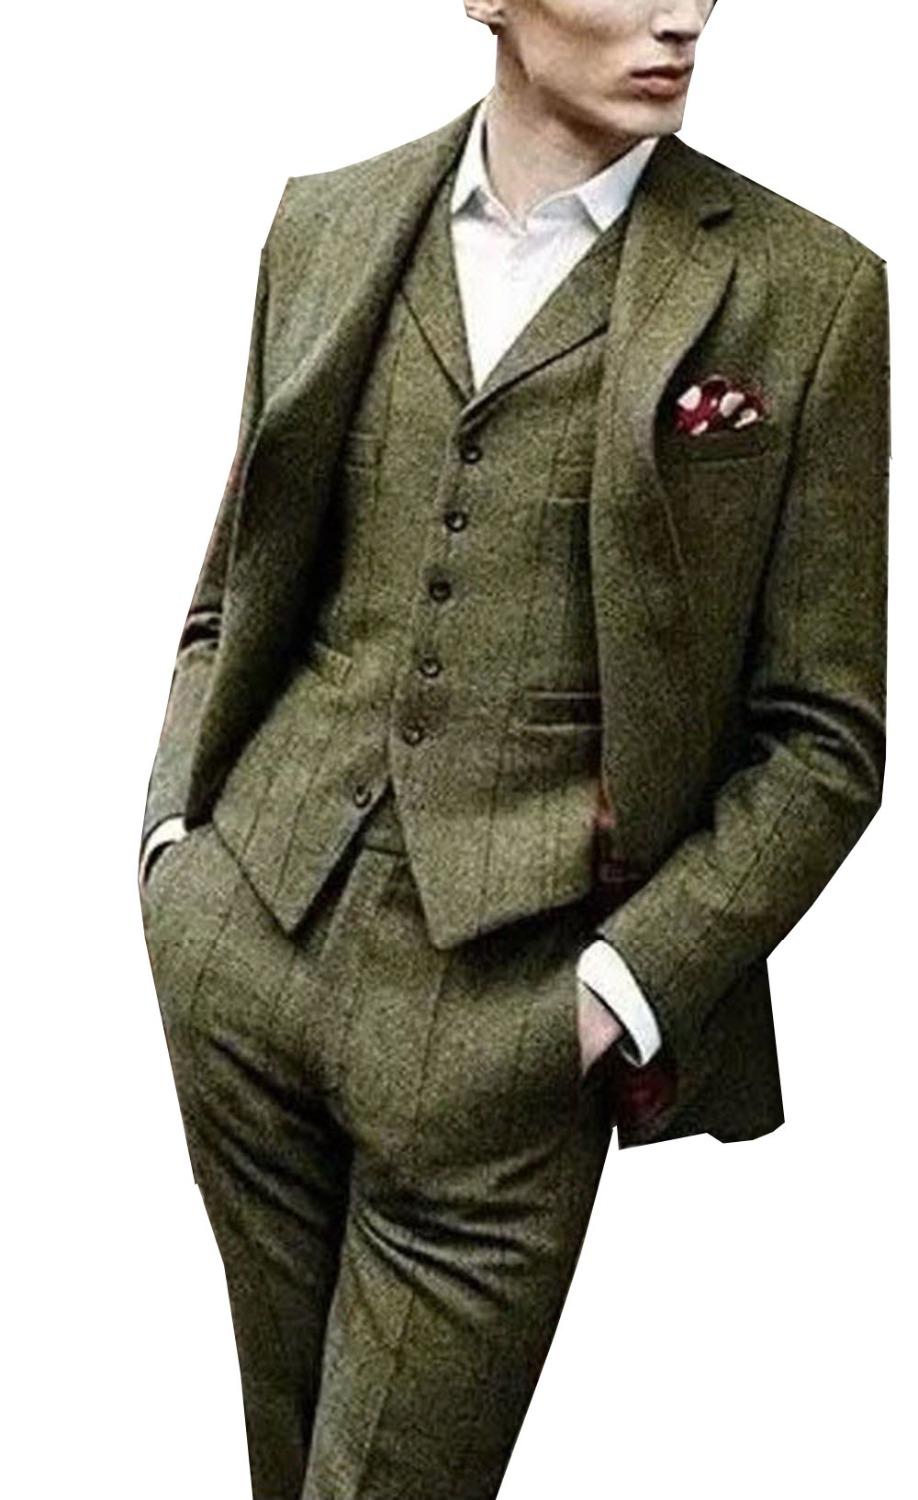 Tweed Men's Suit Slim Fit 3 Pieces Windowpane Check Formal Tuxedos Shawl Lapel Suits (Blazer+vest+Pants)